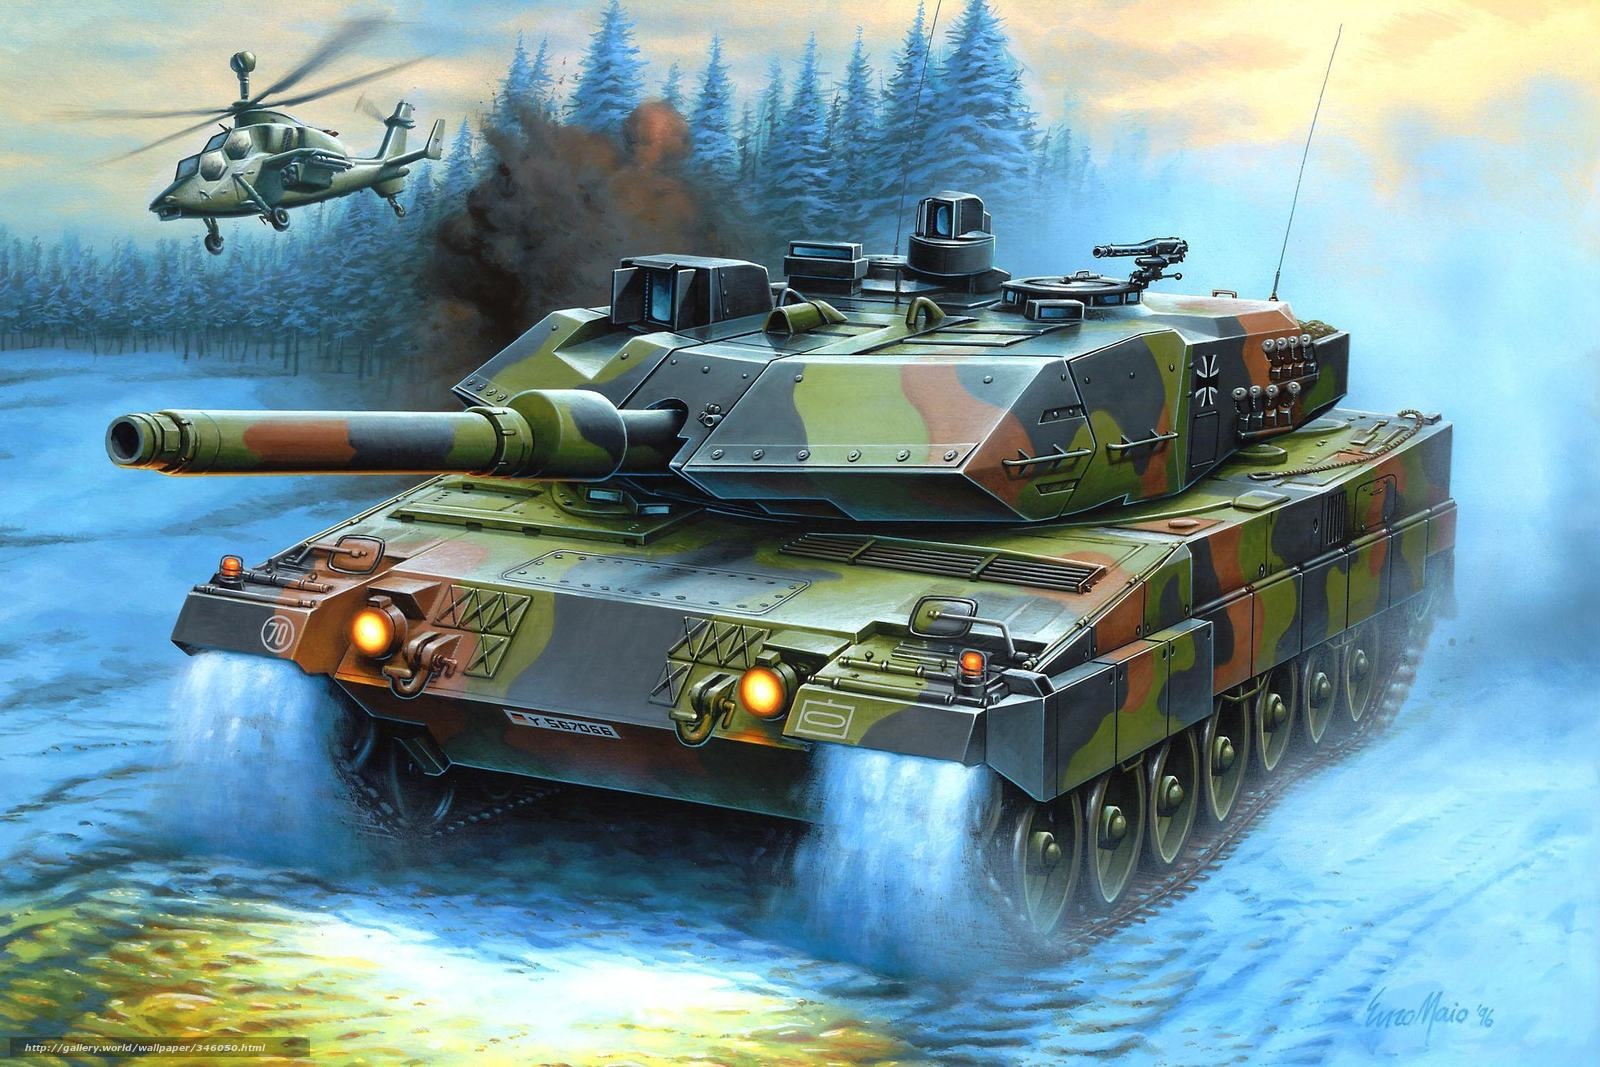 Download wallpaper picture helicopter main battle tank - Wallpaper picture ...